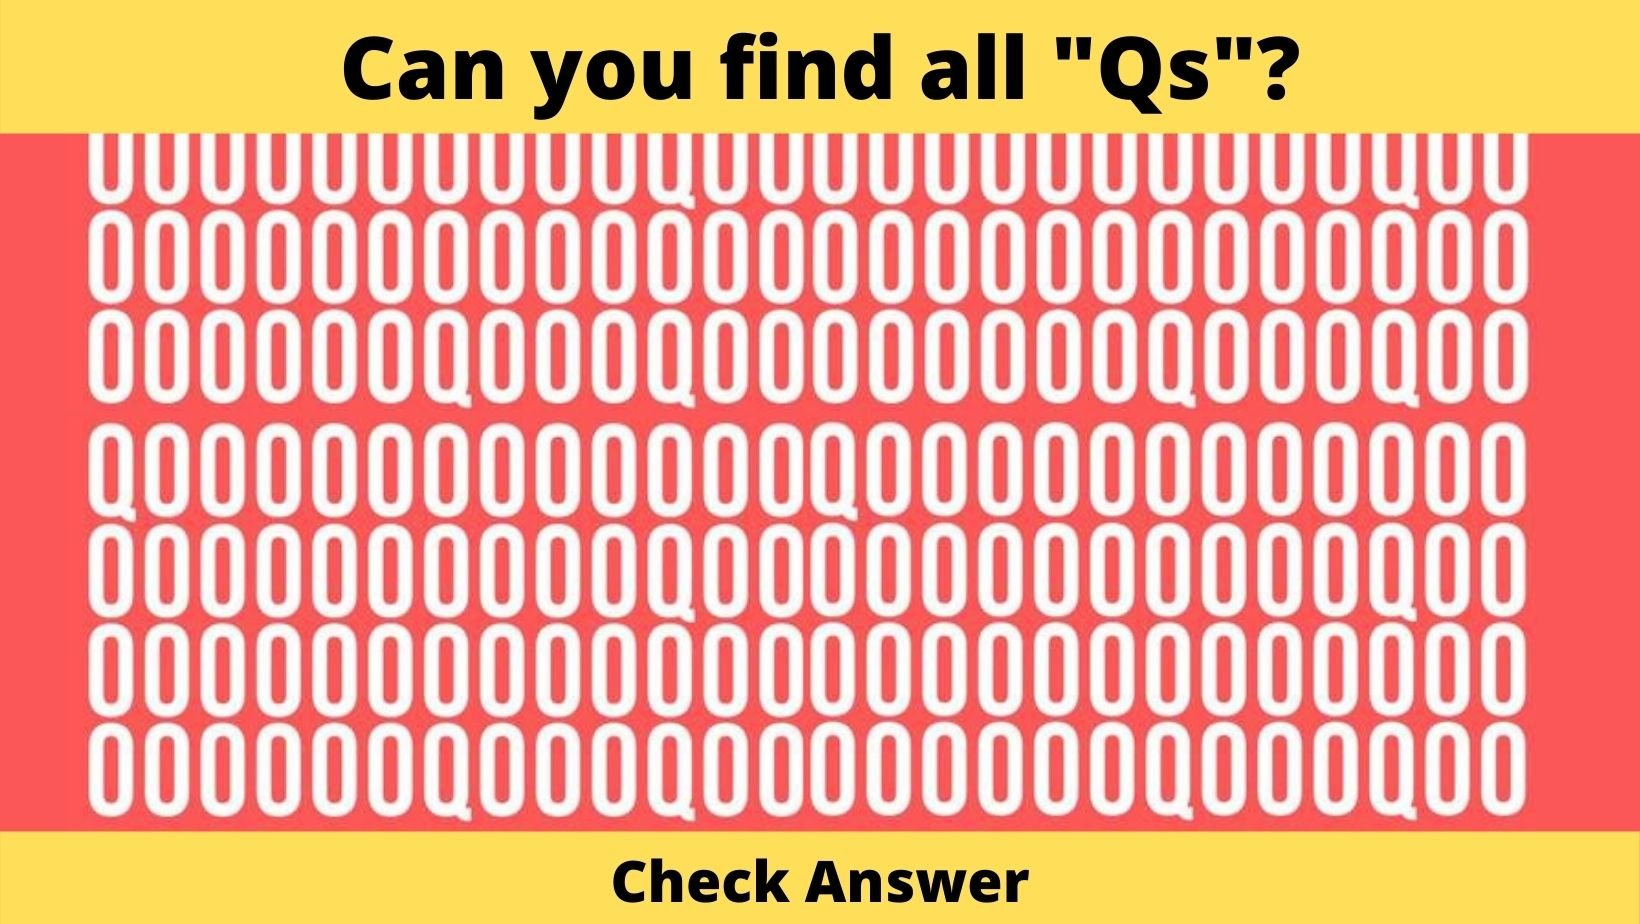 small joys thumbnail 3 4.jpg?resize=412,275 - Only Few People Can Find ALL 'Qs' In The Image On Their First Attempt